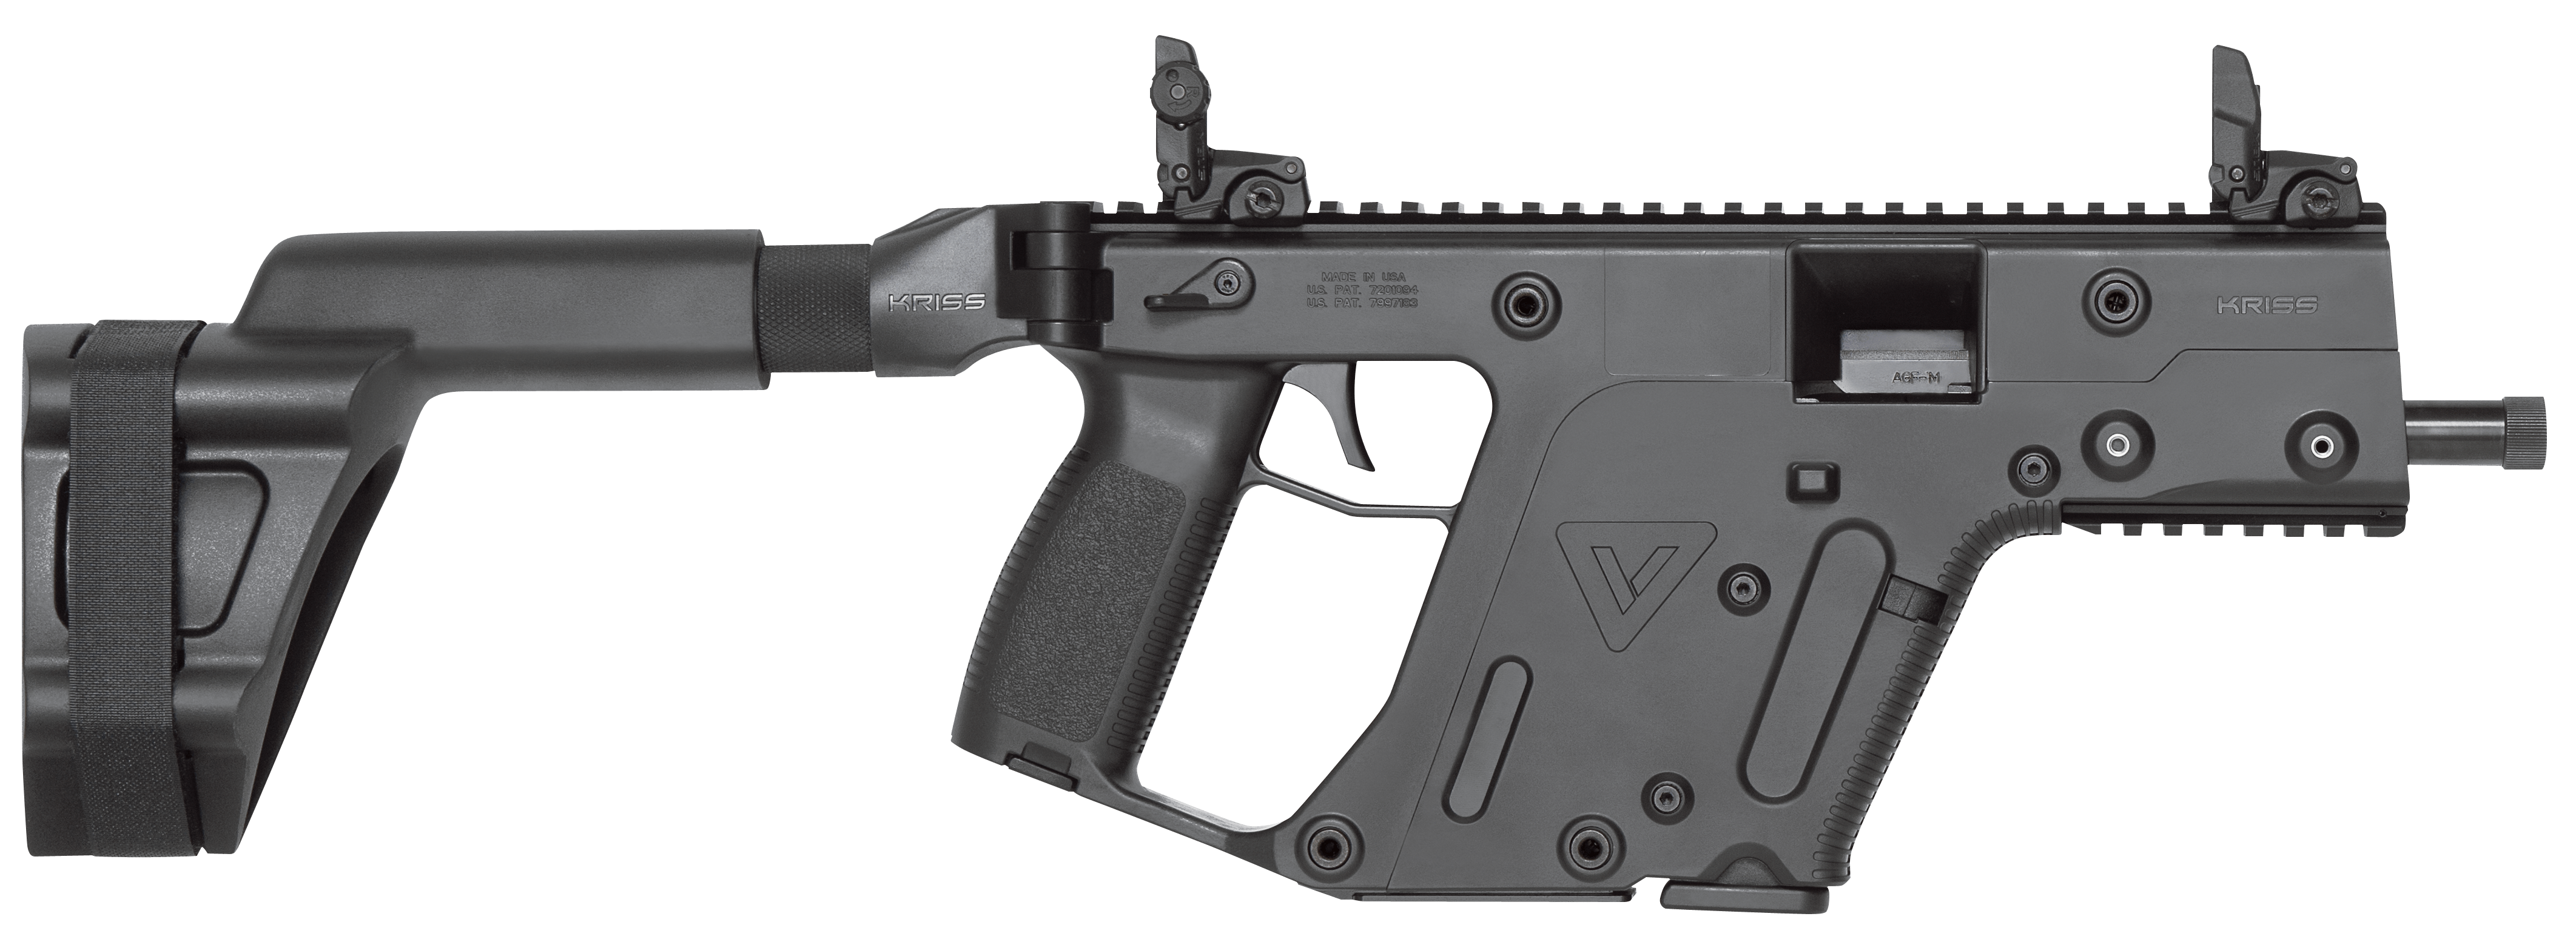 Kriss usa kv psbbl. Vector handguns png transparent stock